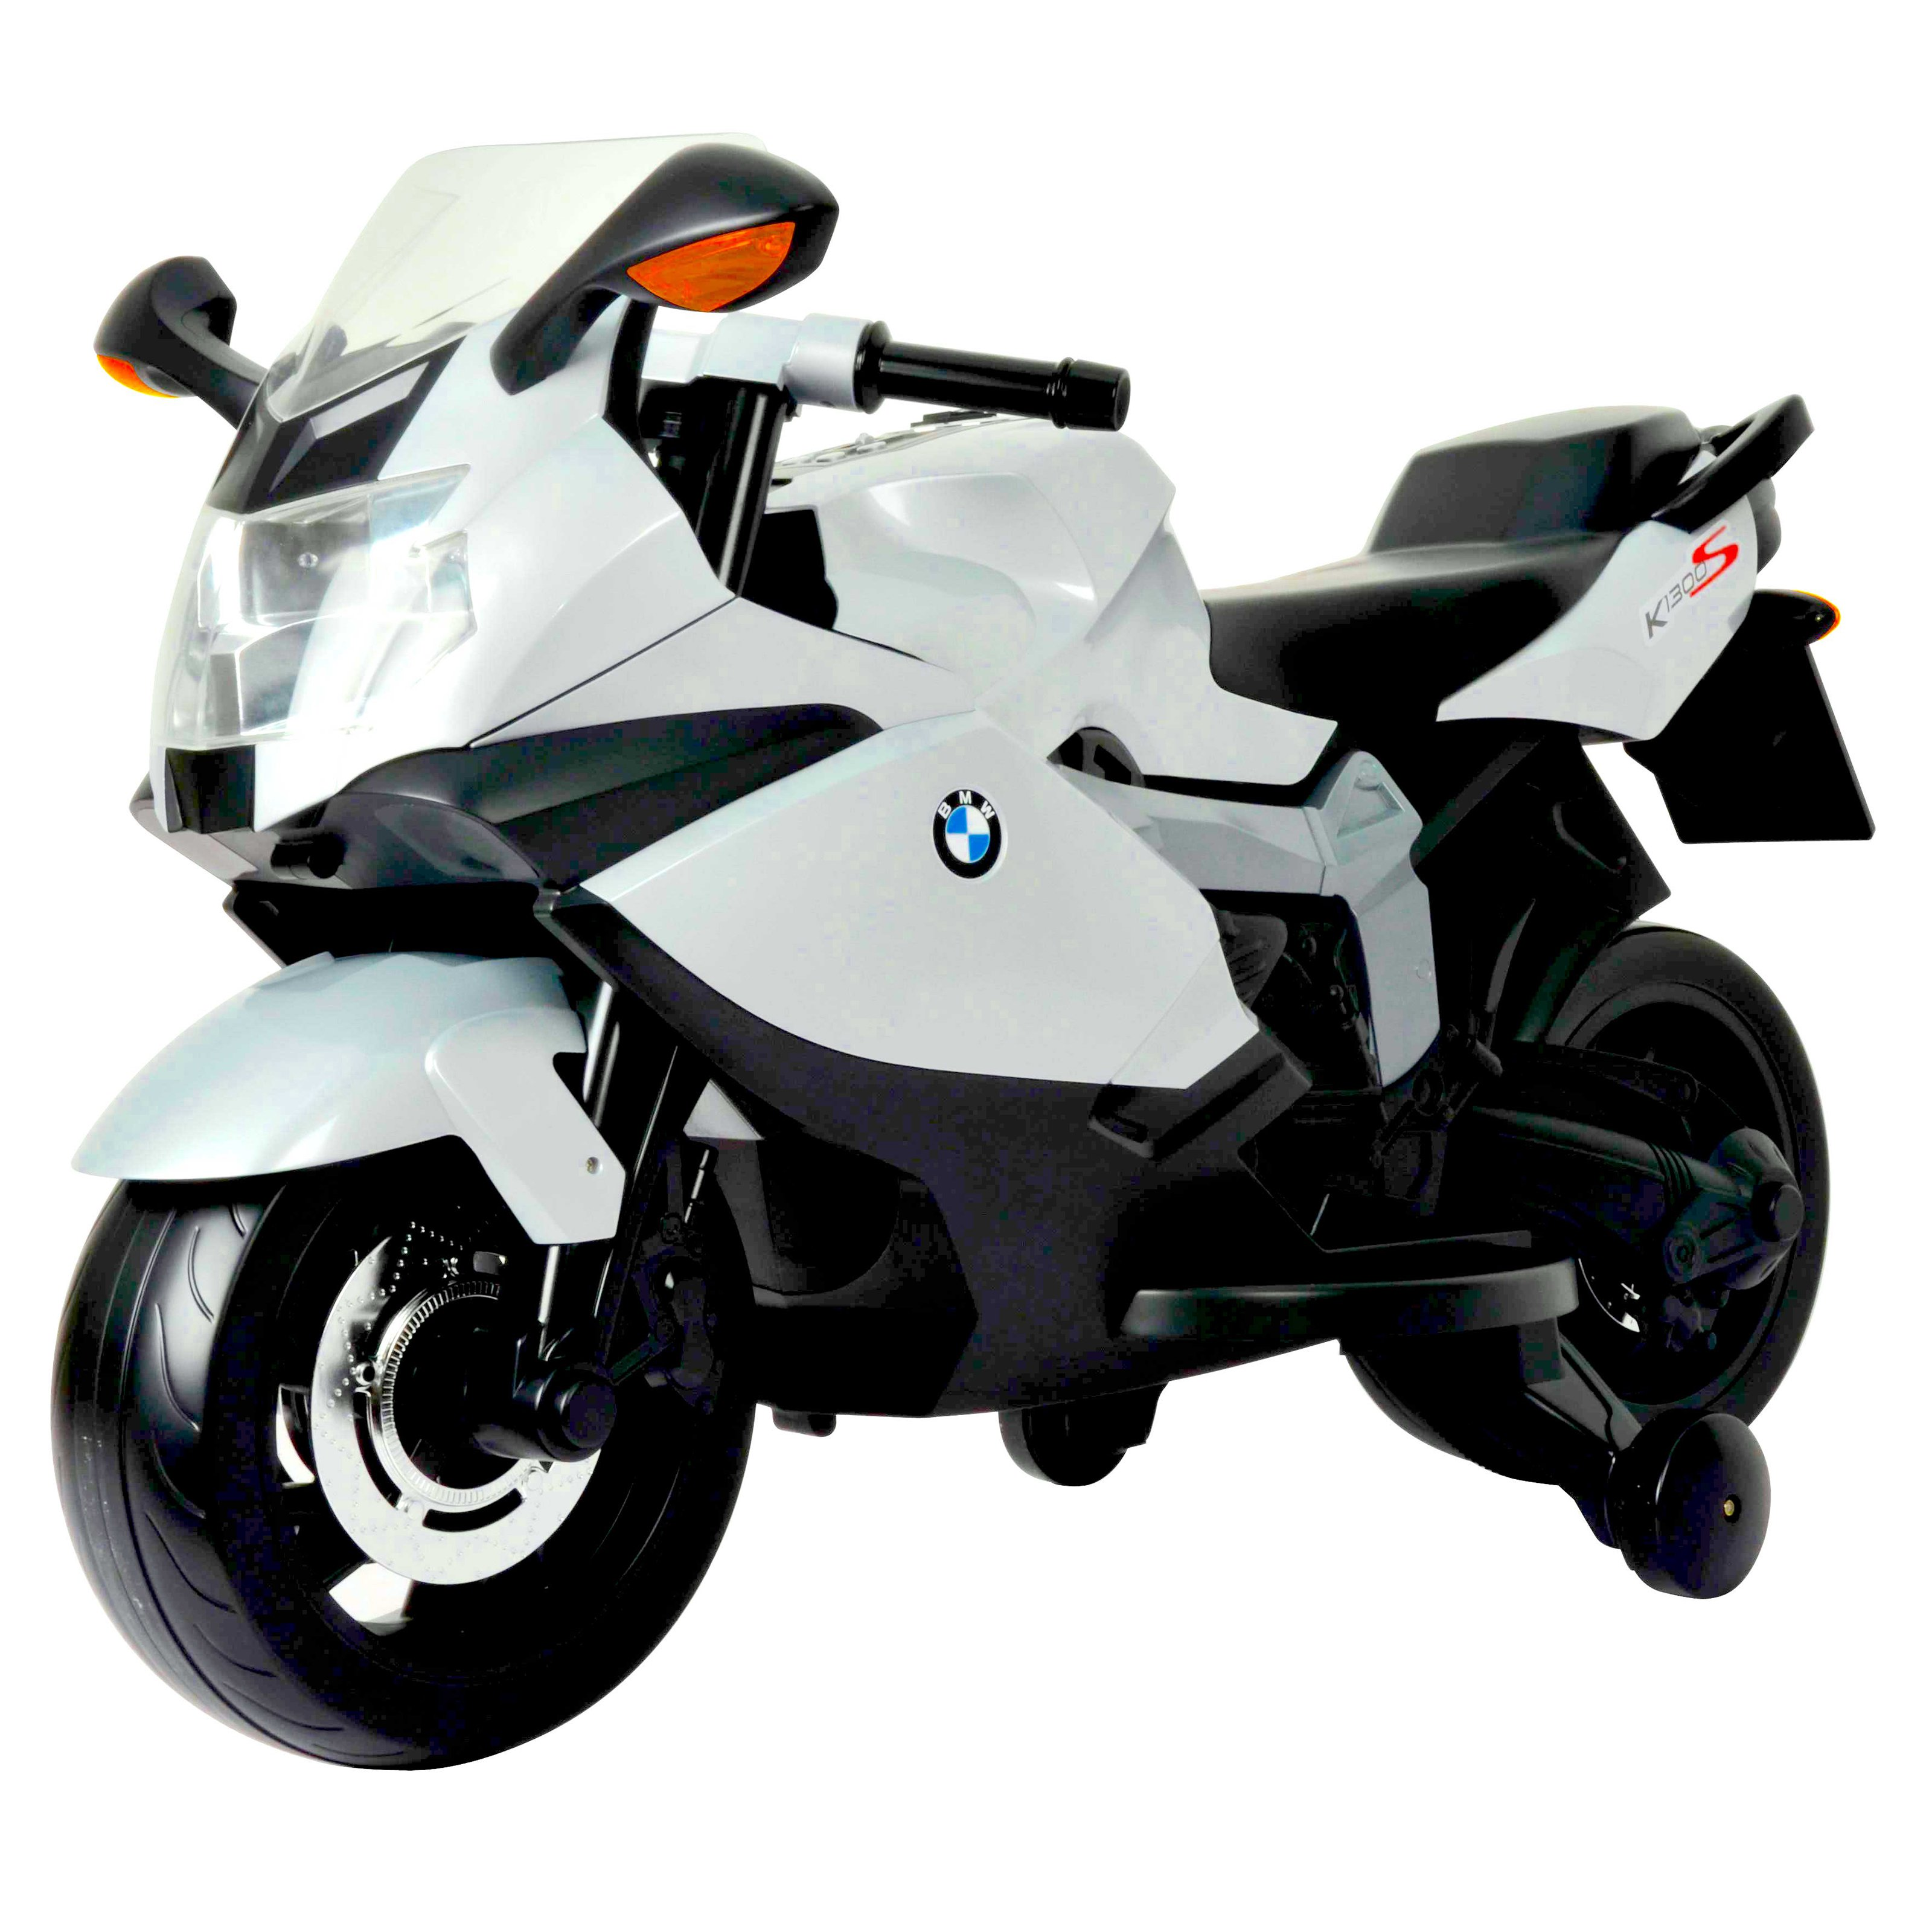 Best Ride on Cars 12V Battery Powered BMW Ride on Motorcycle